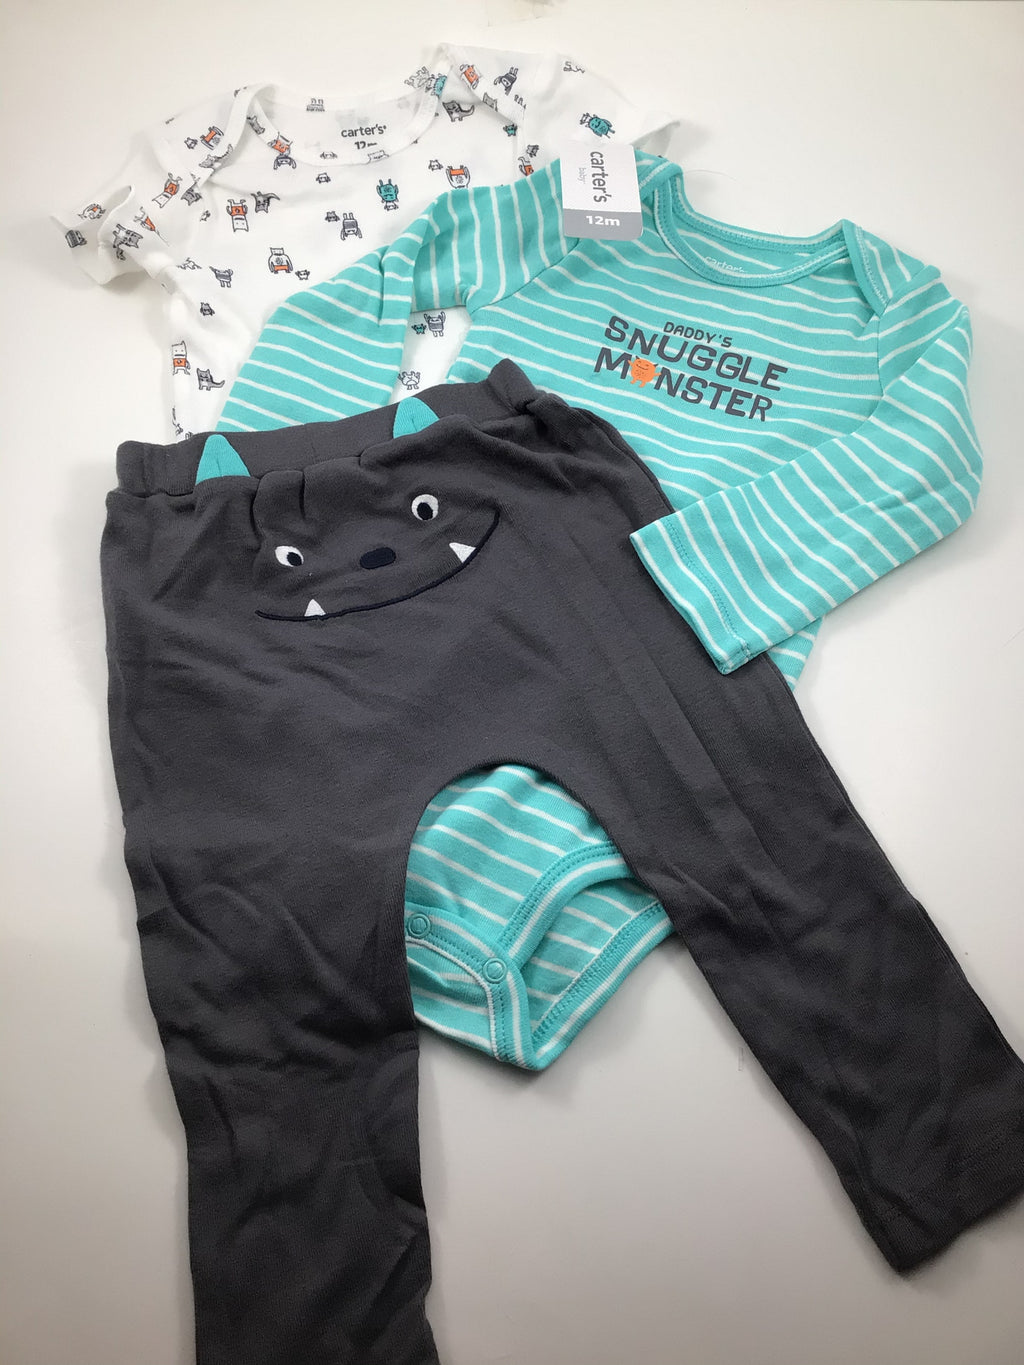 Boy's Long Sleeve Outfit - Size 18-24mo